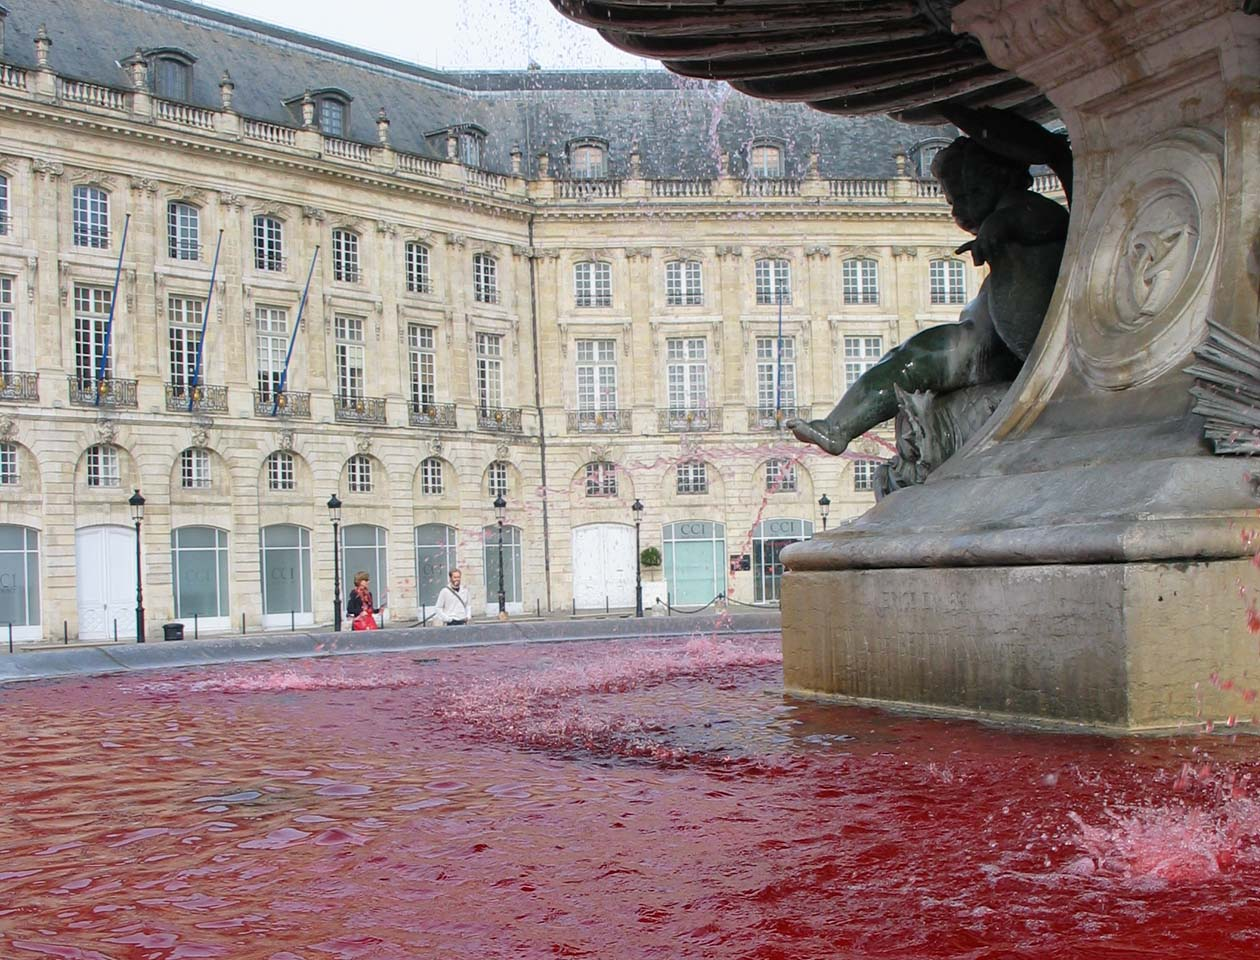 2012-10-08-Fontaine-Bourse-Pink-October